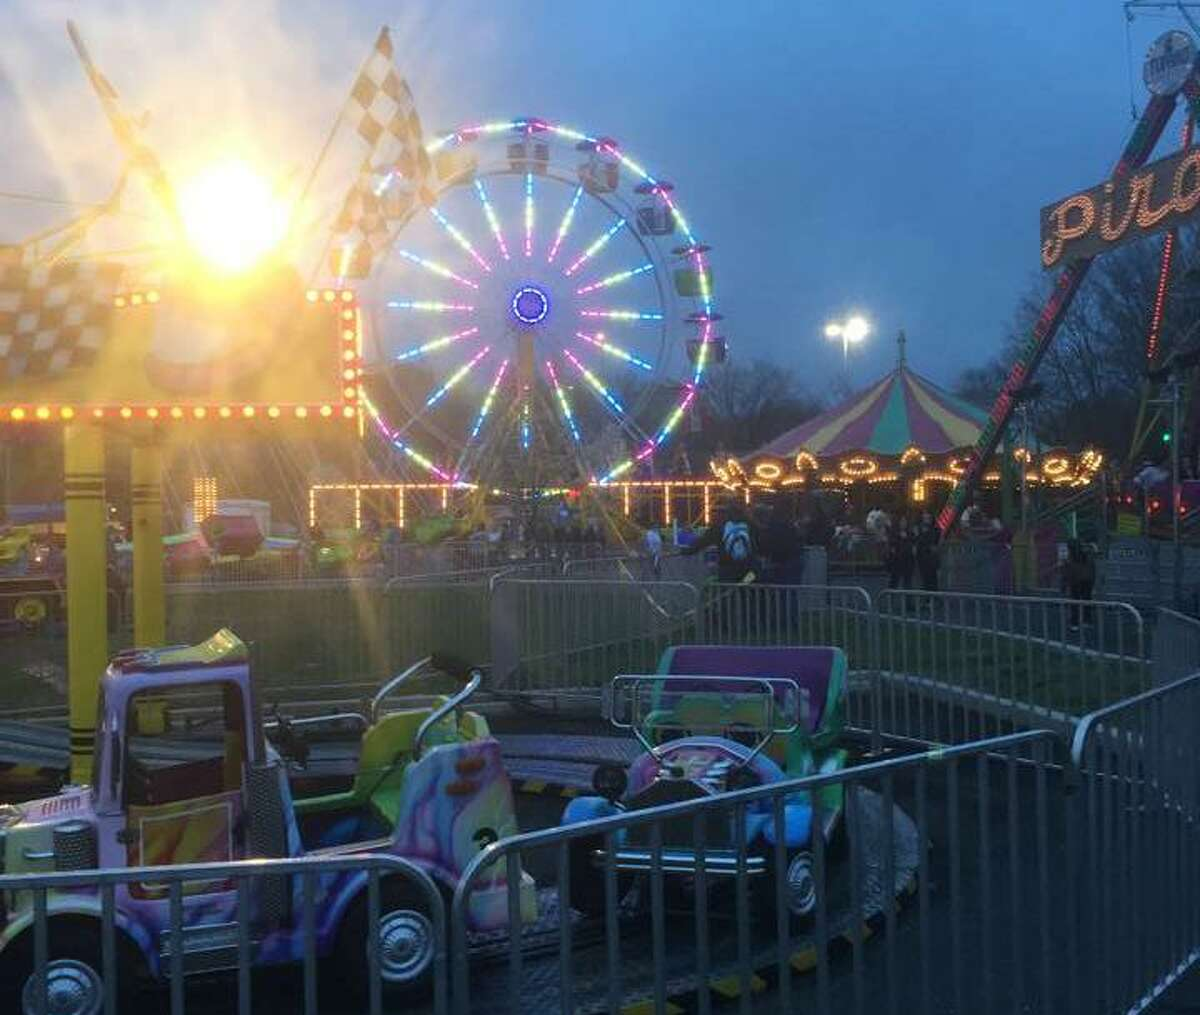 TheDanbury Volunteer Firemen's Association will hold another carnival this year in July.